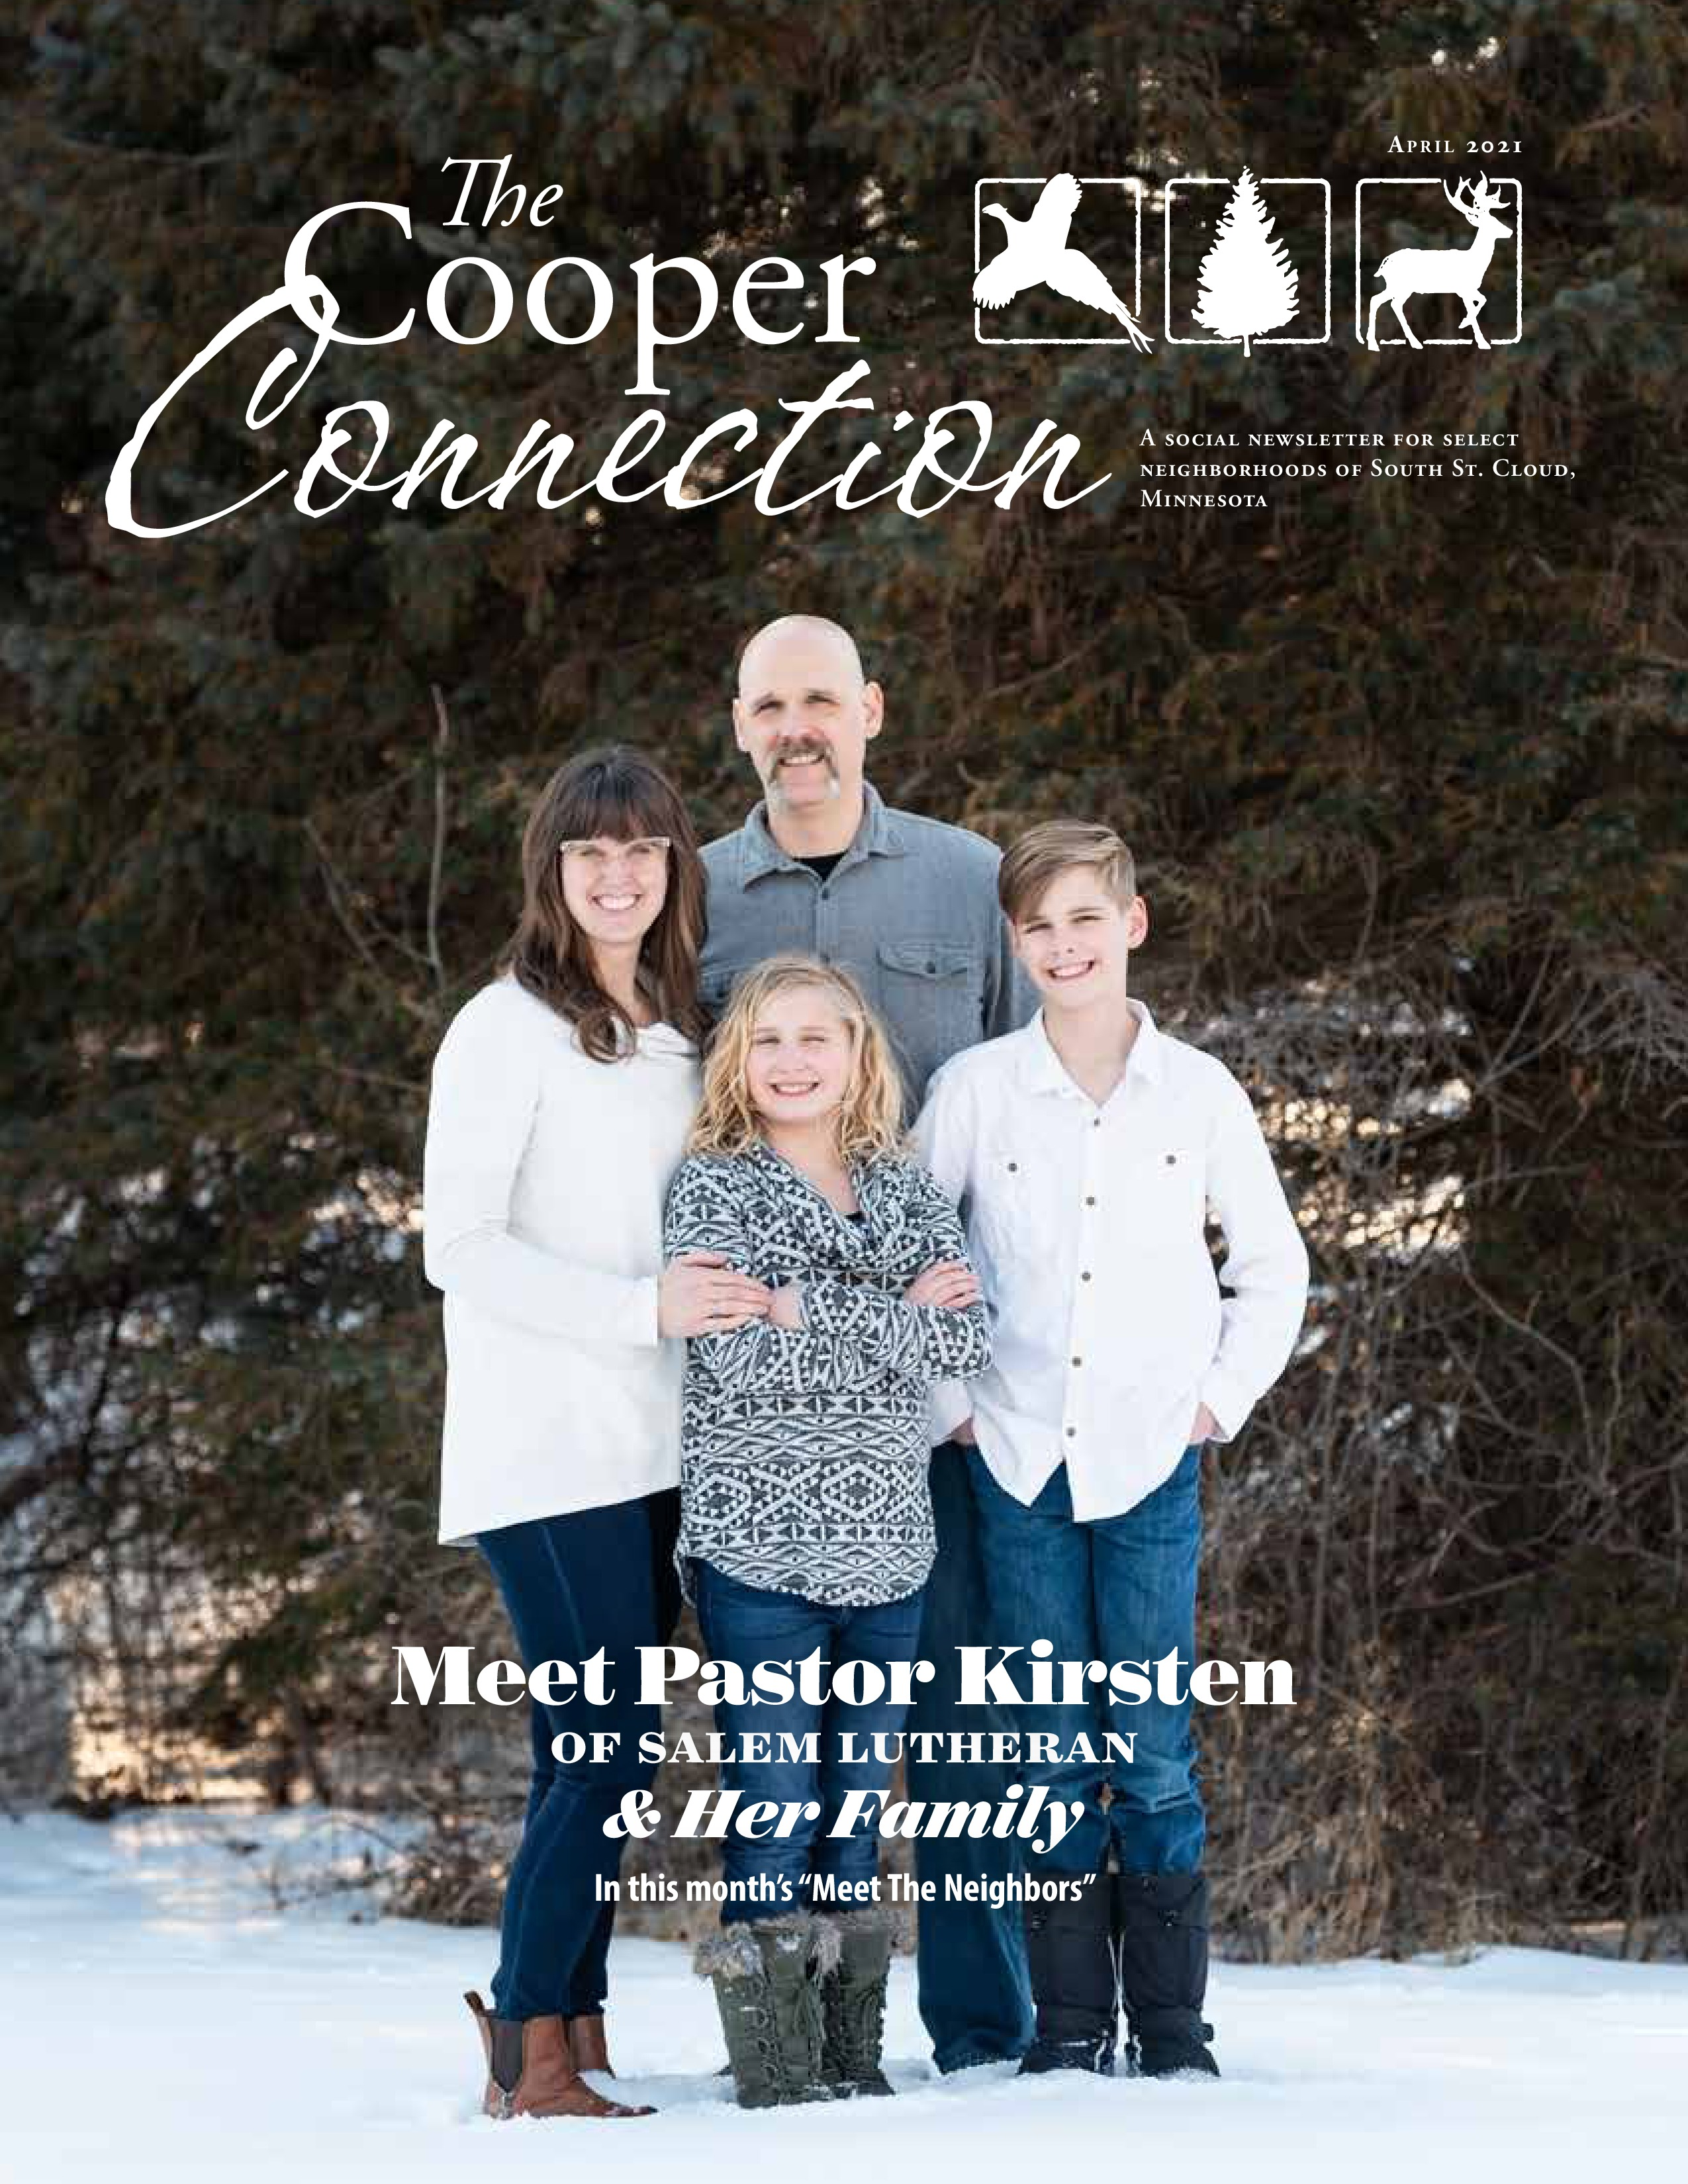 The Cooper Connection 2021-04-01